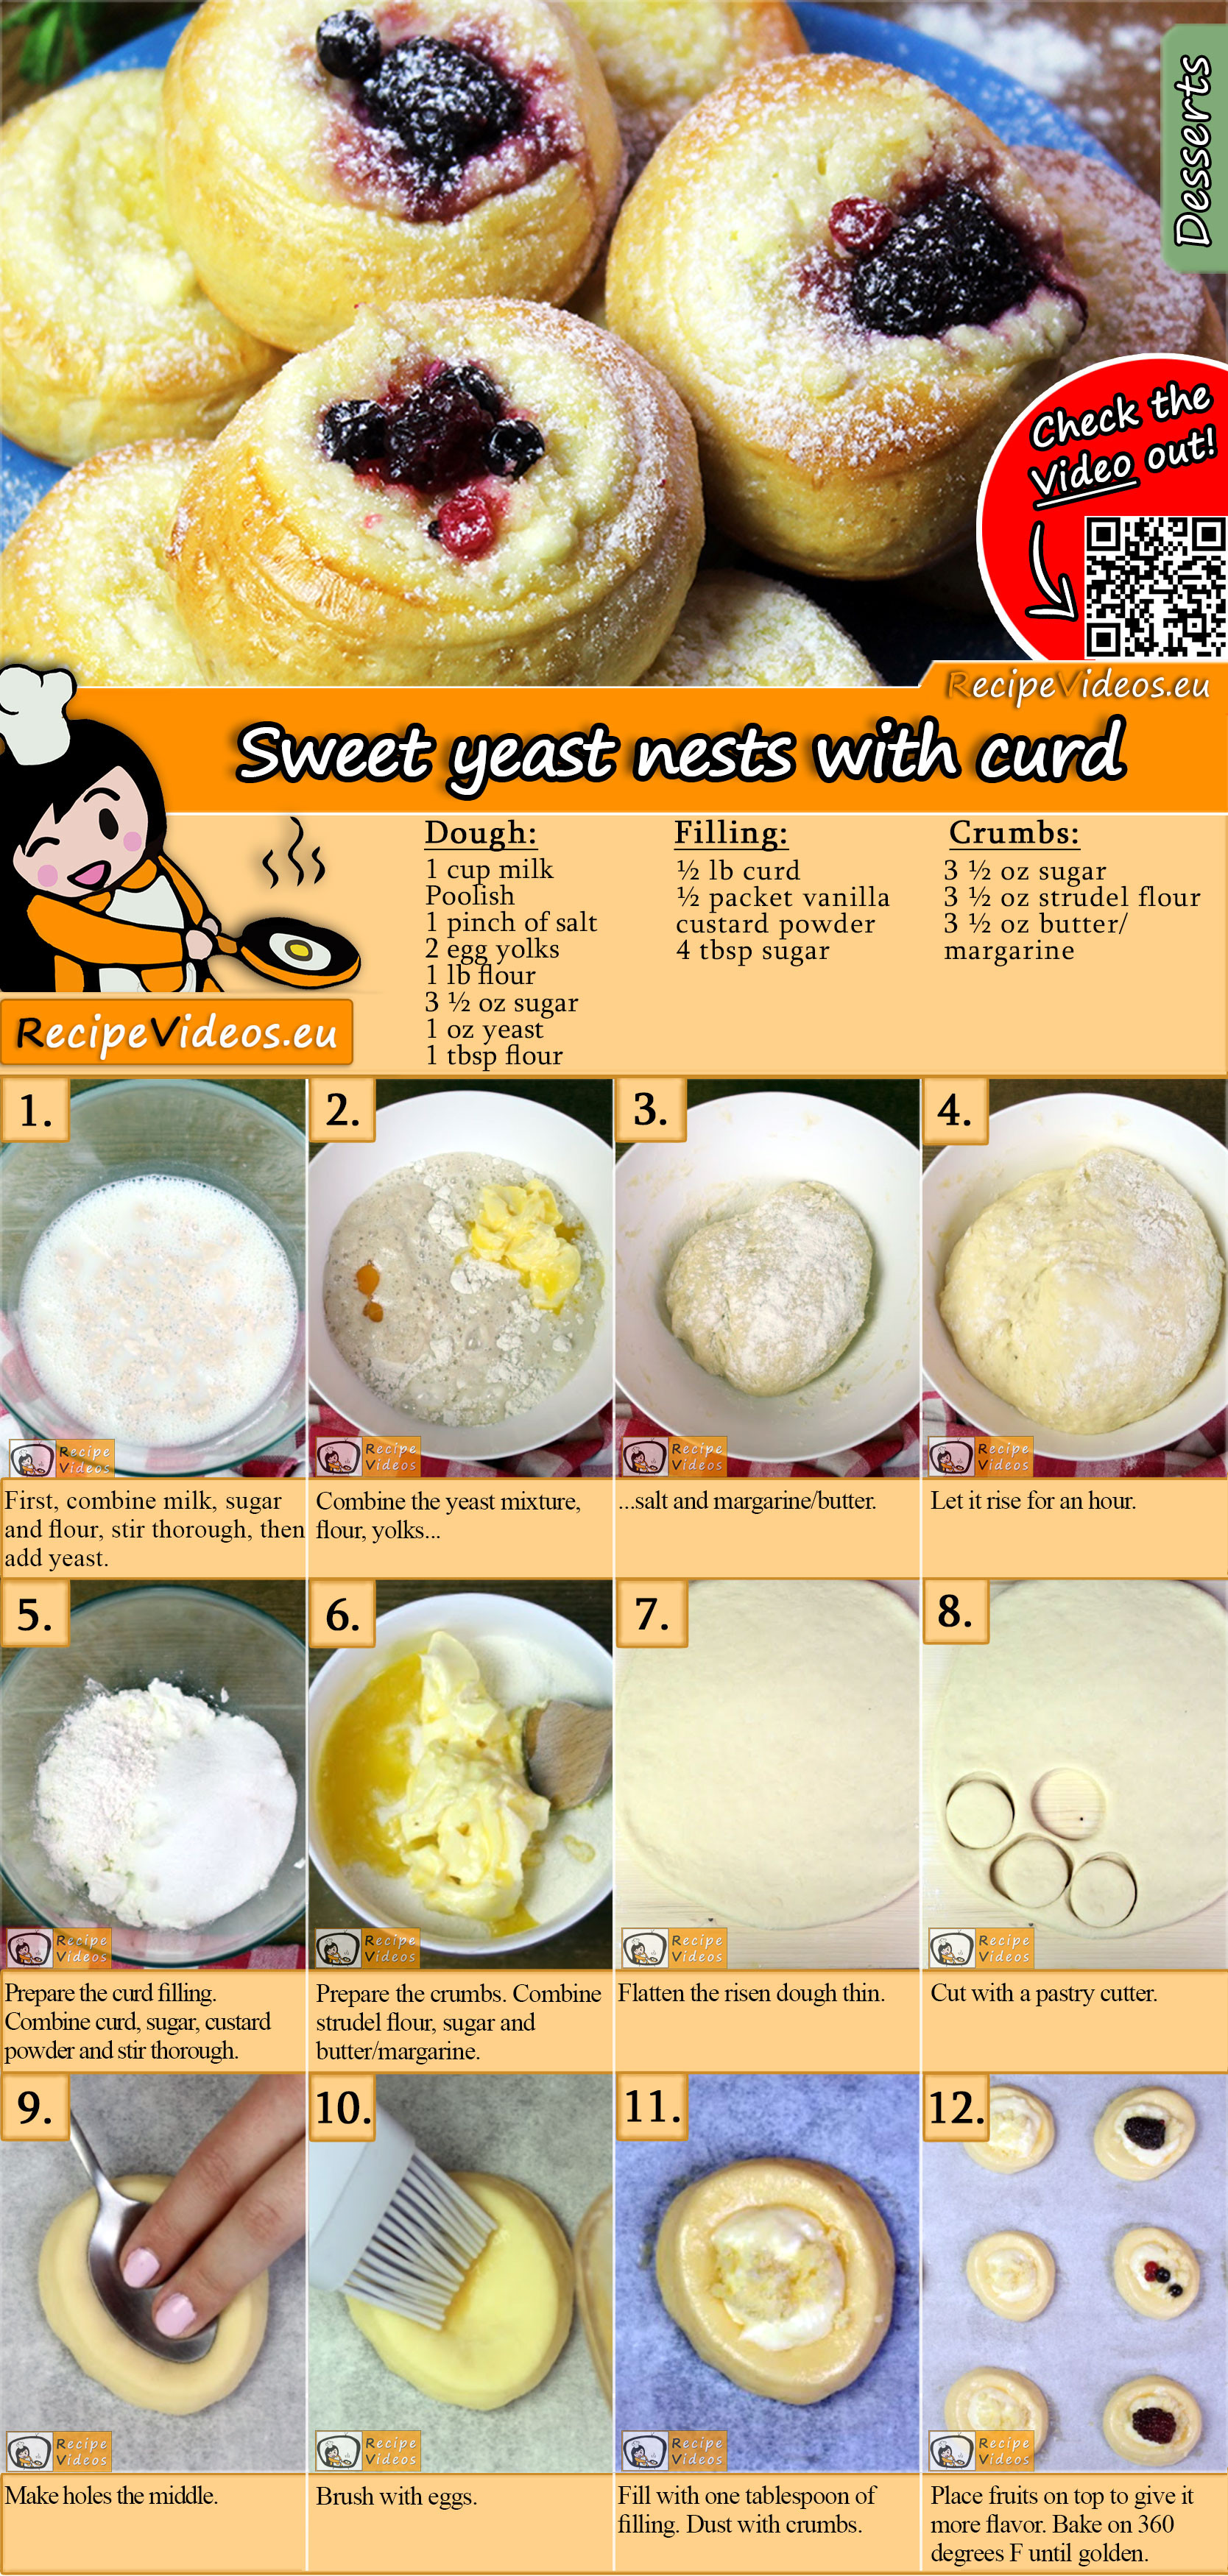 Sweet yeast nests with curd recipe with video